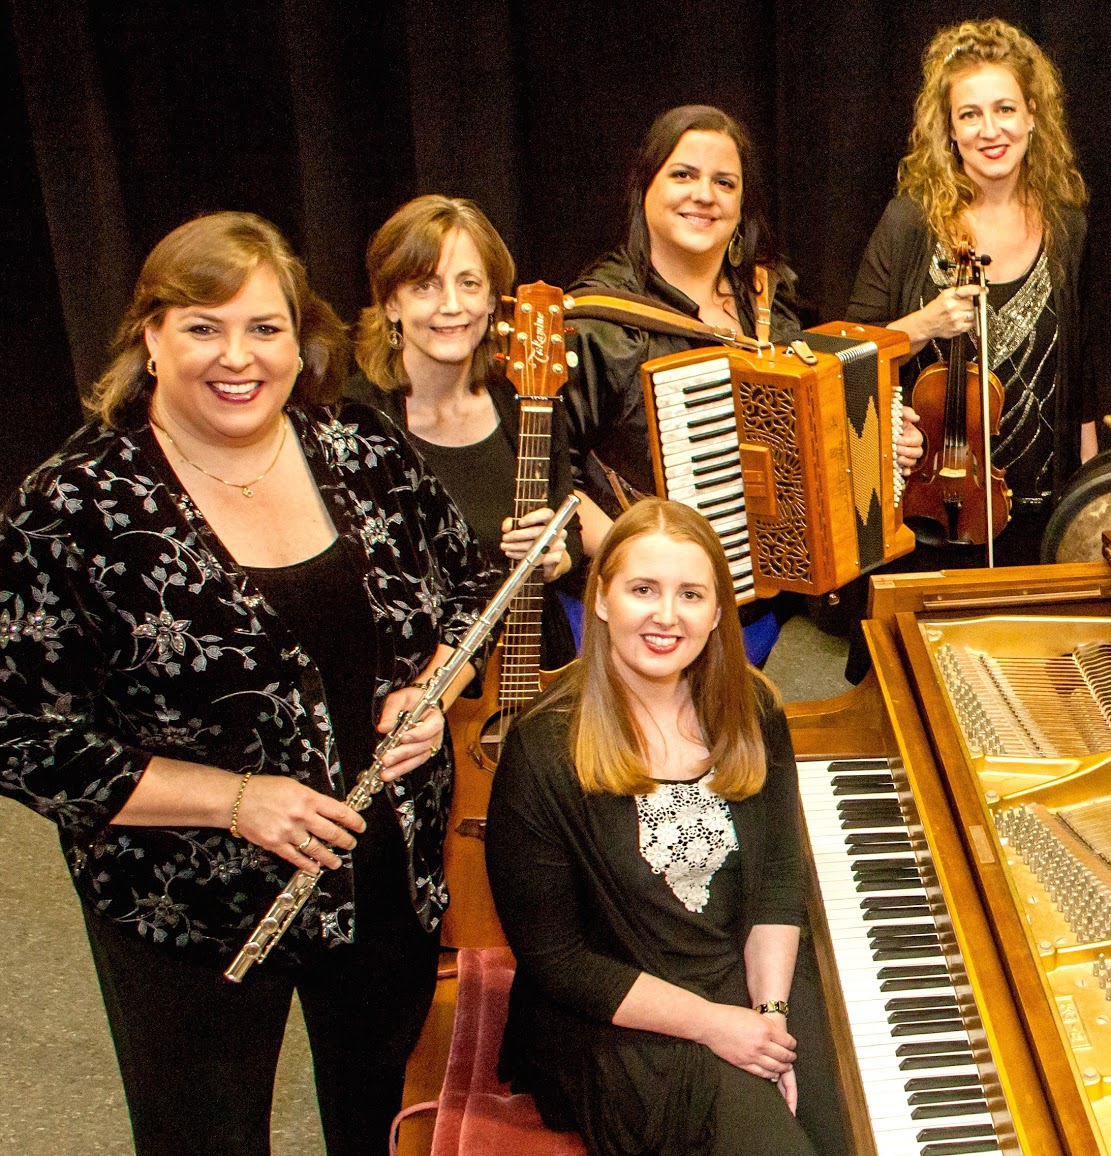 Celtic Music Ensemble Cherish the Ladies to Perform at Smothers